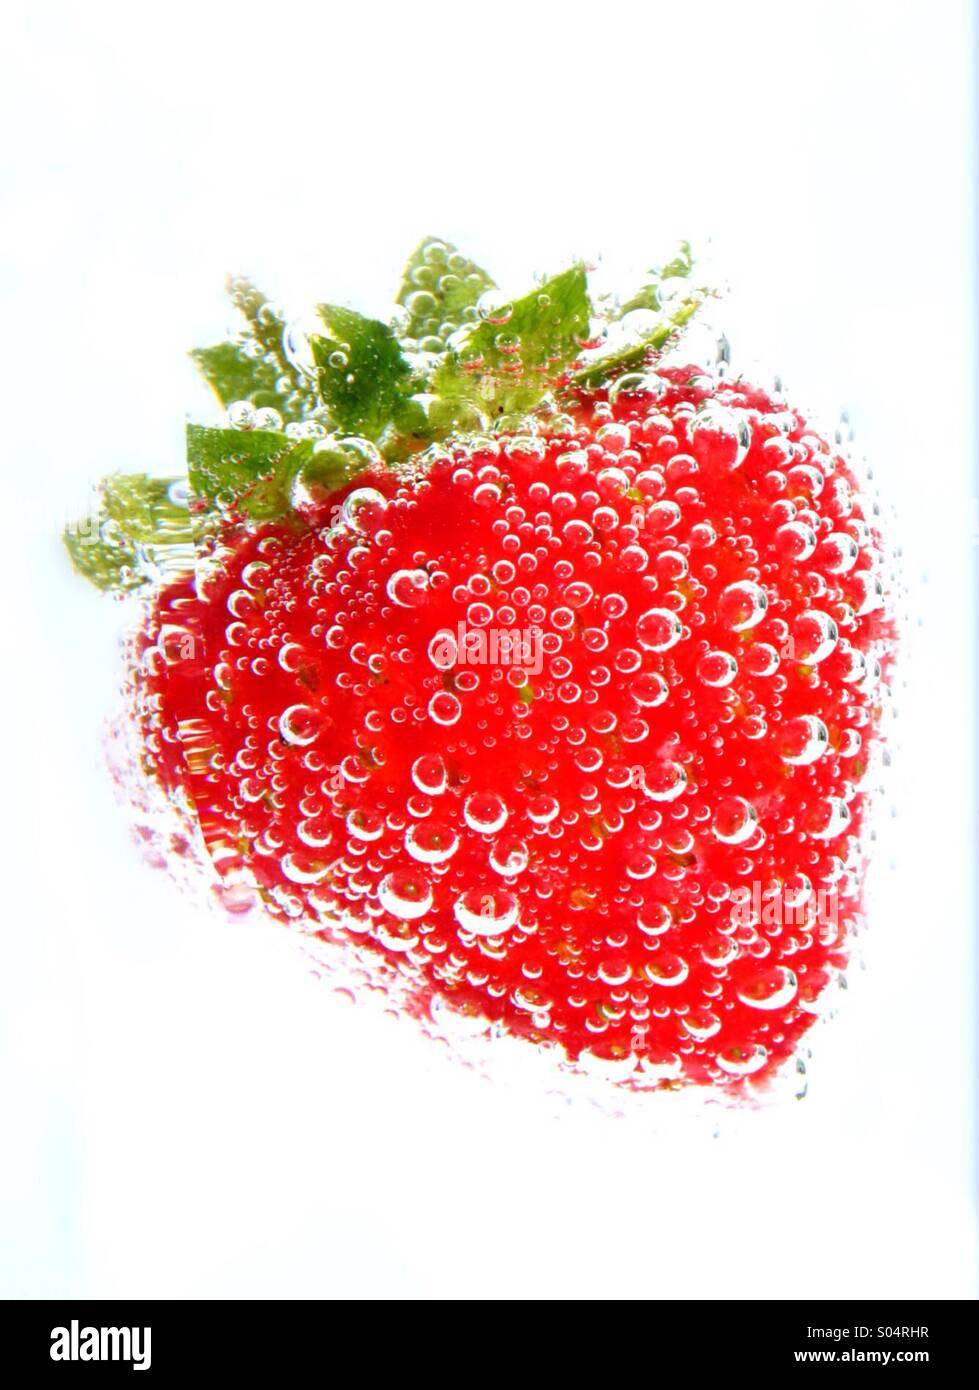 Bubbly strawbelly - Stock Image